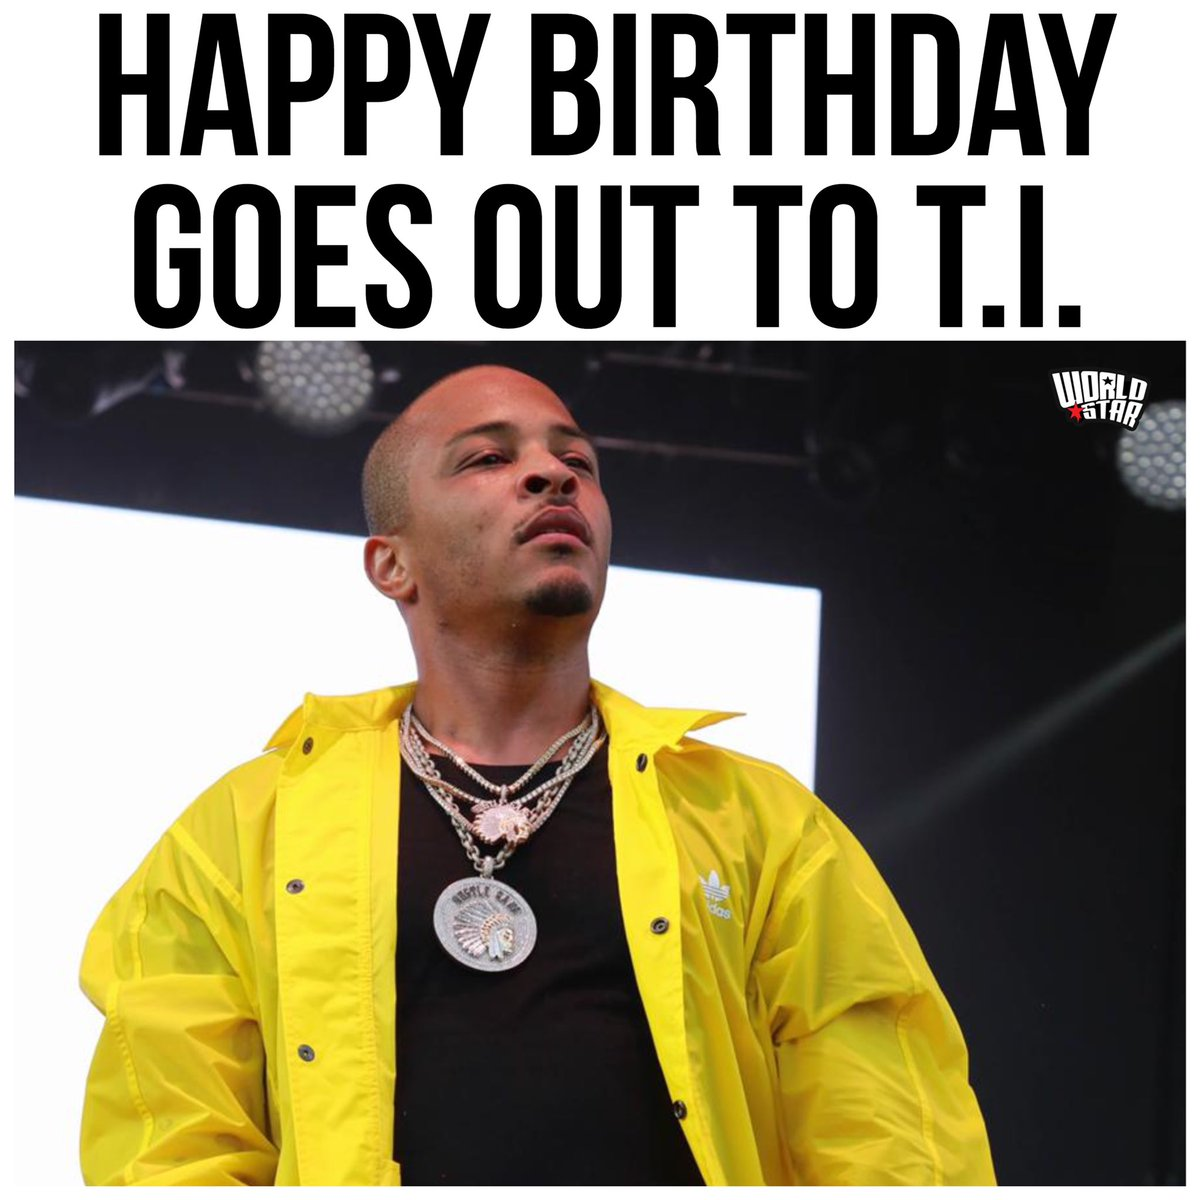 #HappyBirthday goes out to #TI! He turned 40 today! Comment your favorite song of his below! 👇🎂🎈 @Tip https://t.co/nfw3r0O1yu